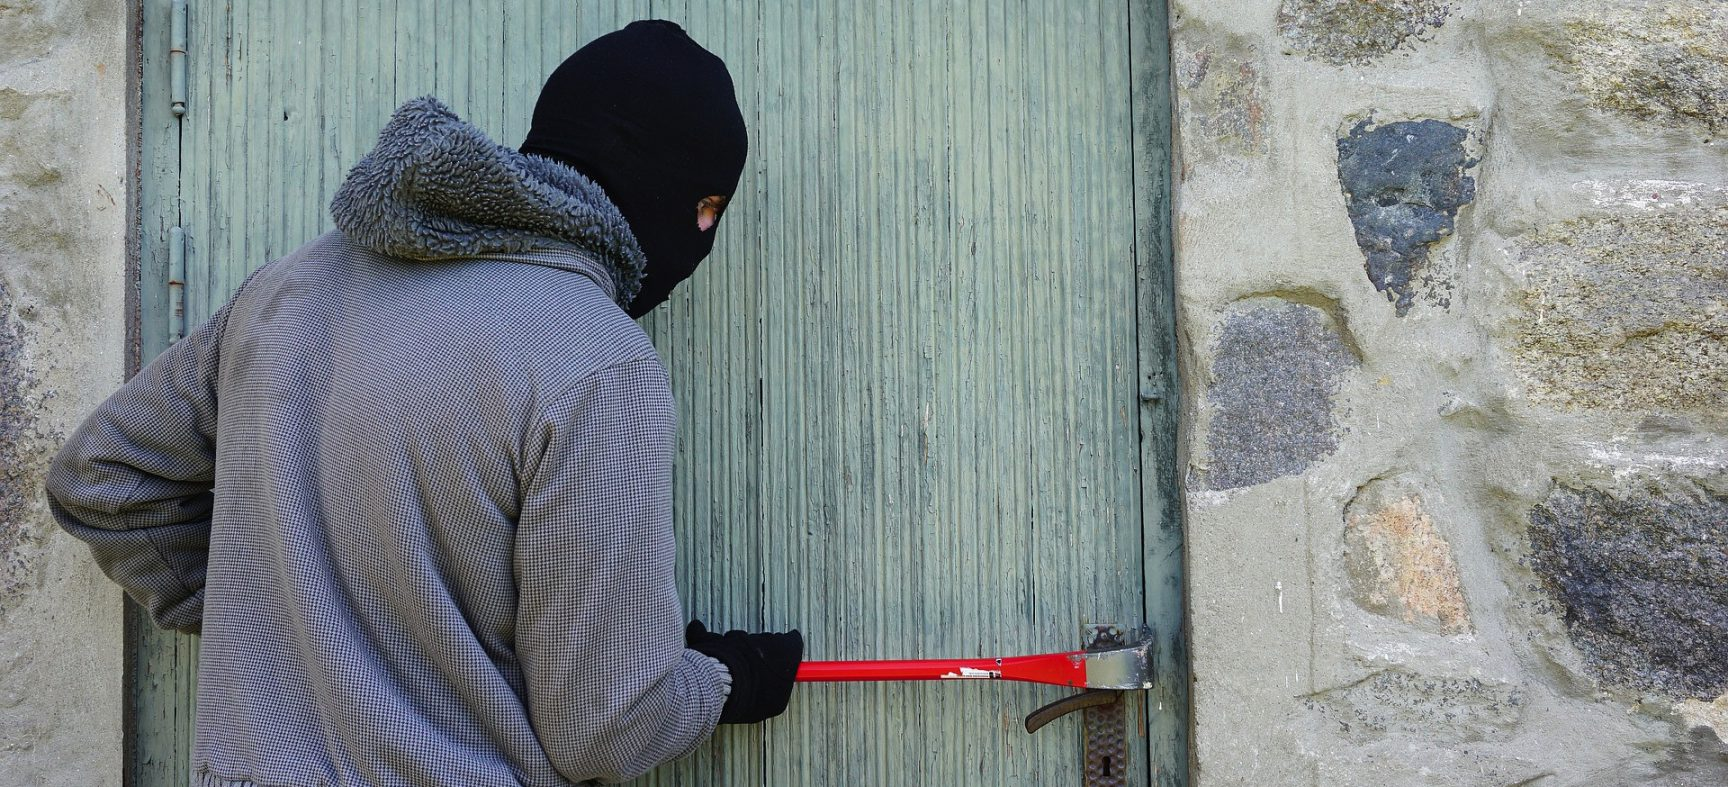 How to make your home less attractive to burglars